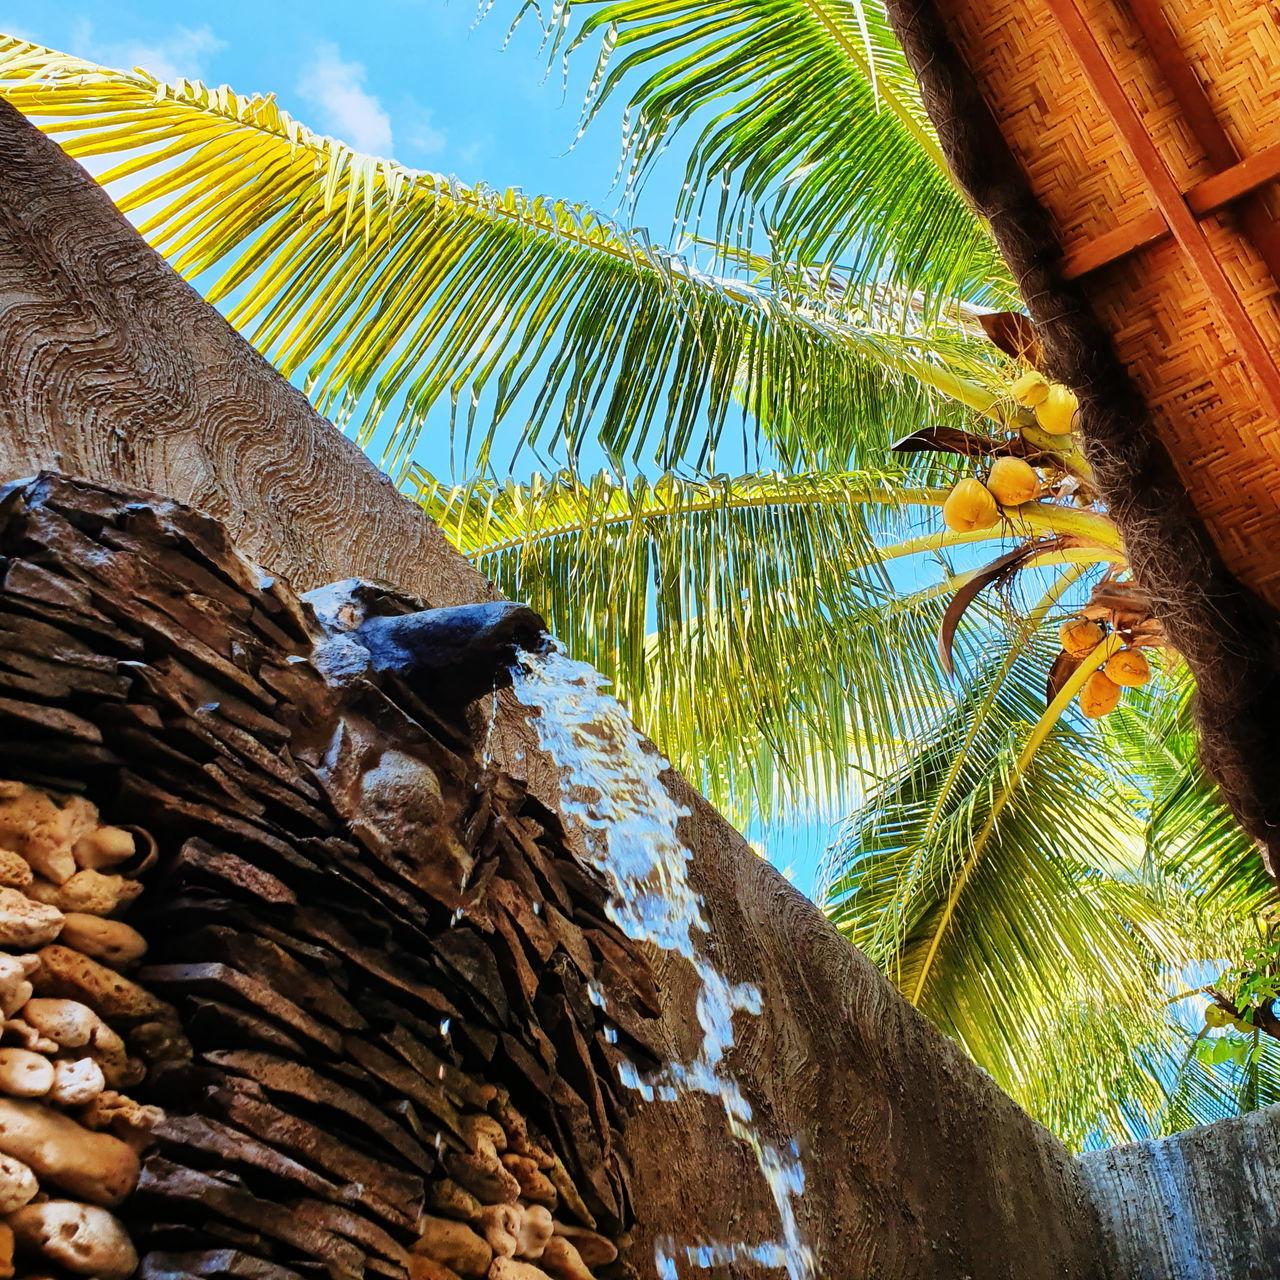 LOW ANGLE VIEW OF BIRD ON PALM TREE